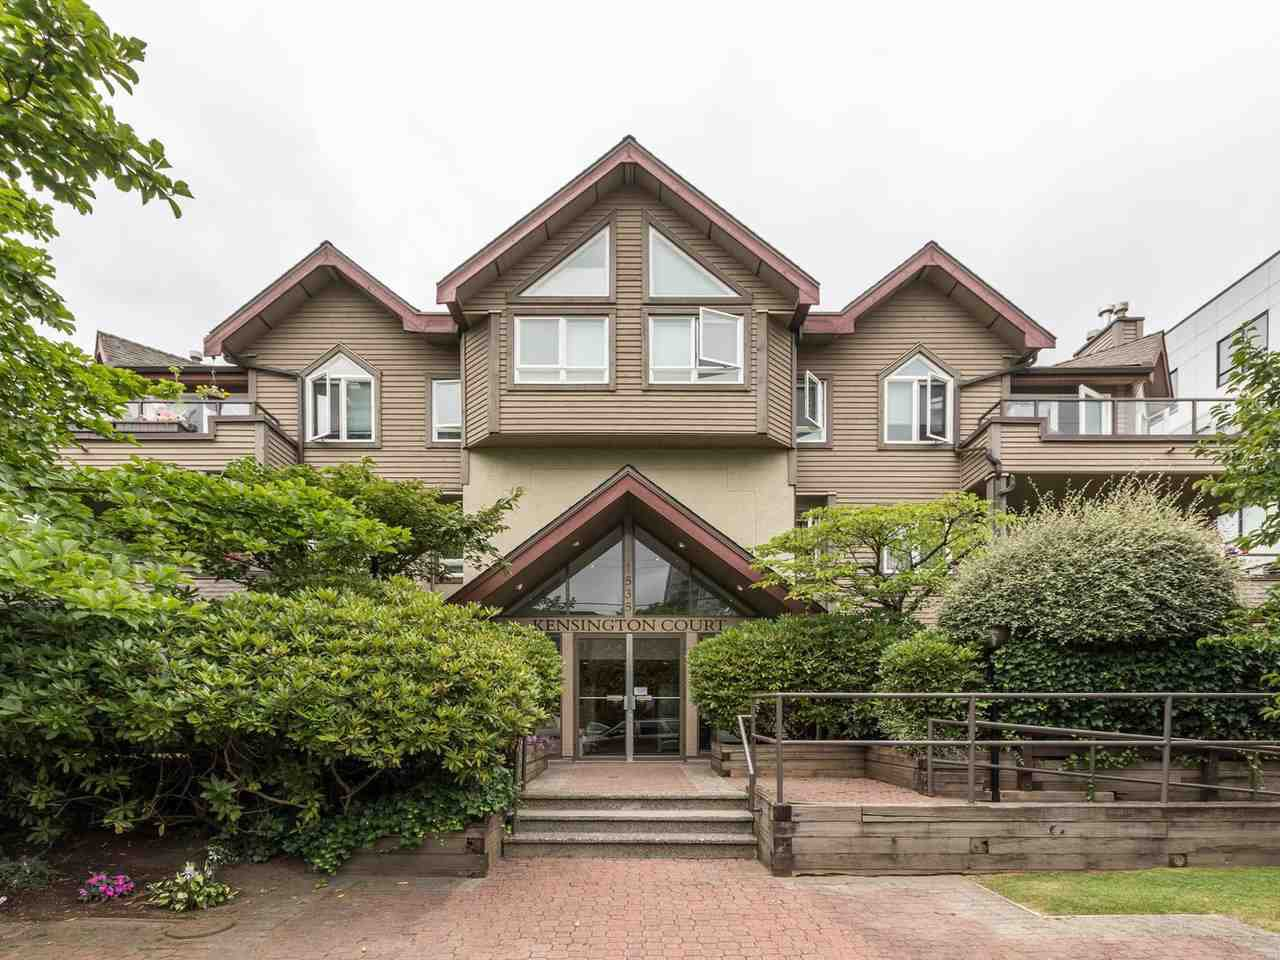 """Main Photo: 203 1535 CHESTERFIELD Avenue in North Vancouver: Central Lonsdale Condo for sale in """"KENSINGTON COURT"""" : MLS®# R2479537"""